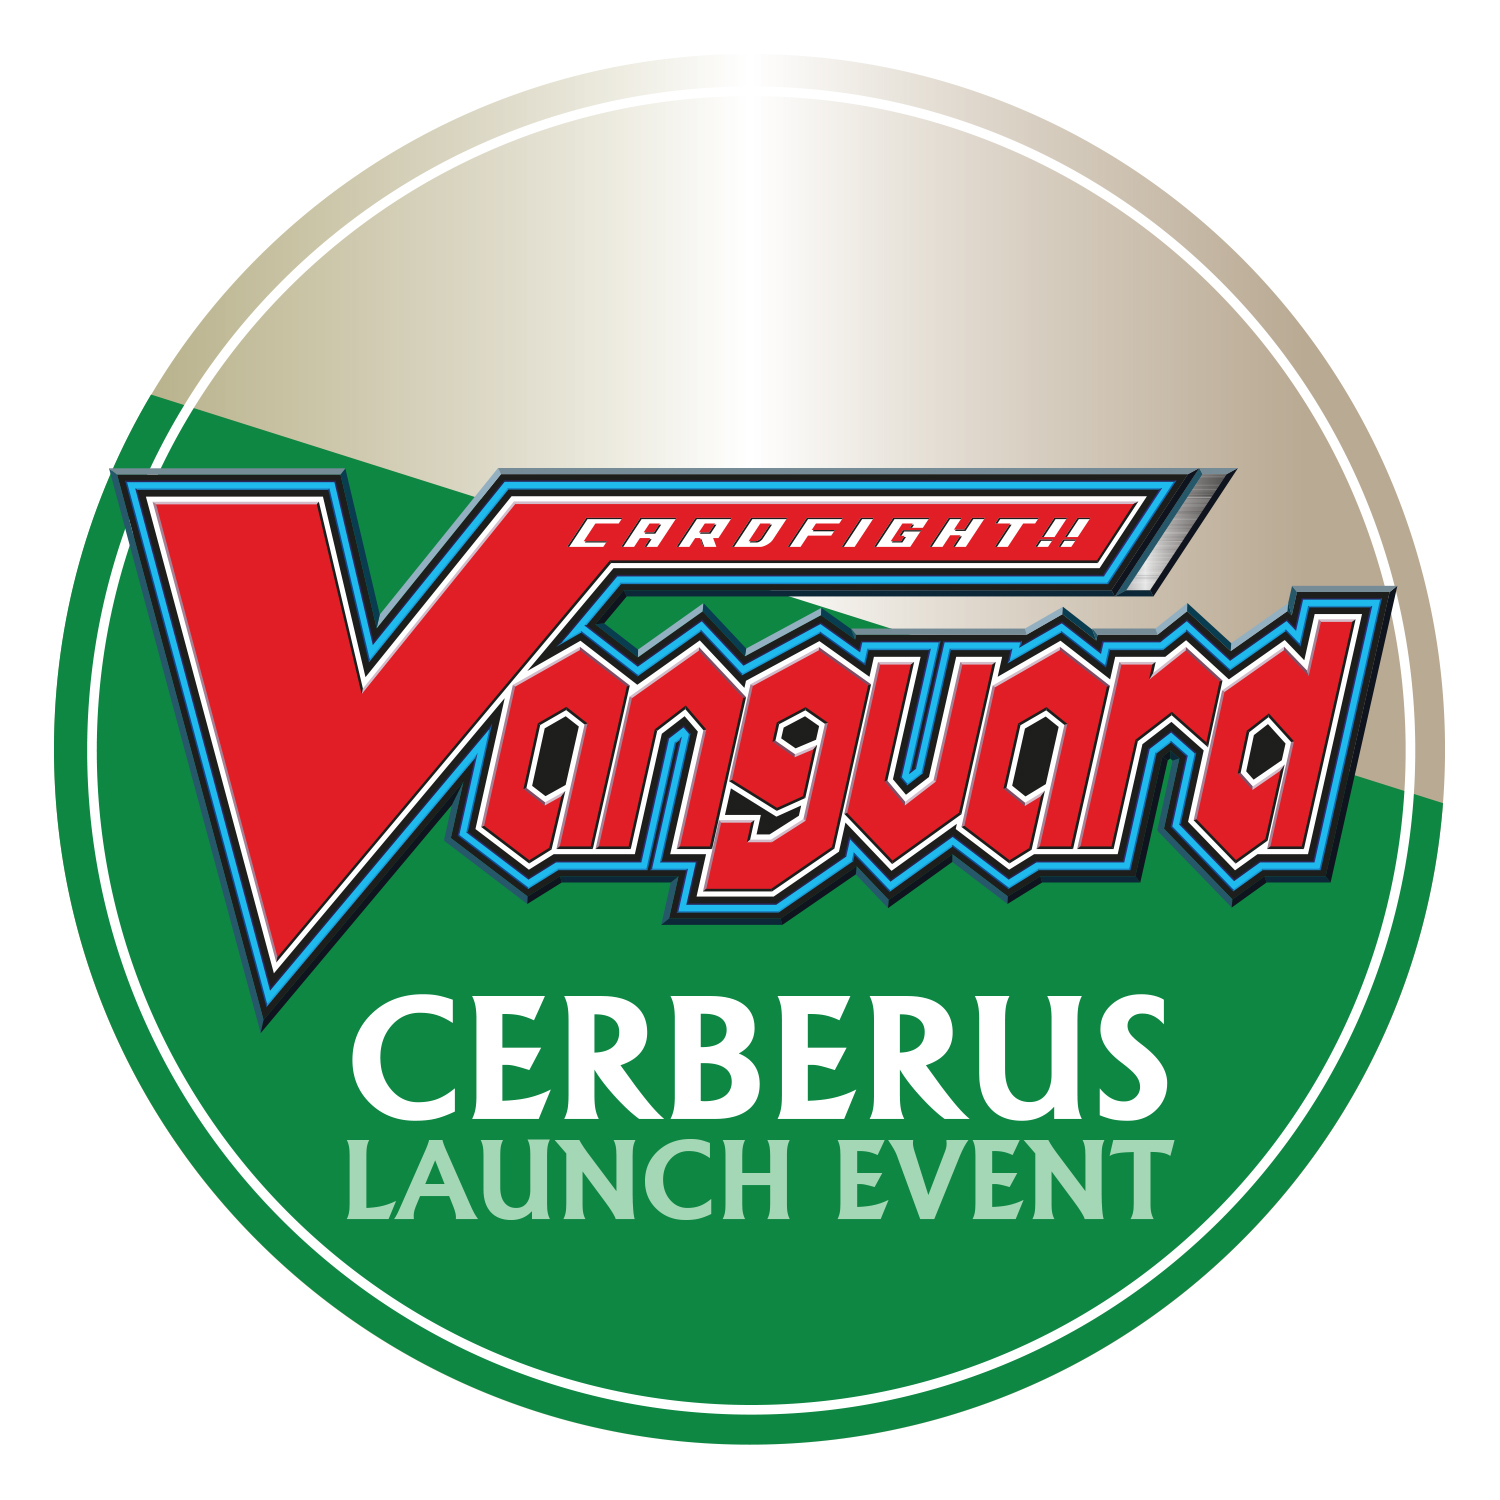 Evento Speciale - CERBERUS LAUNCH EVENT